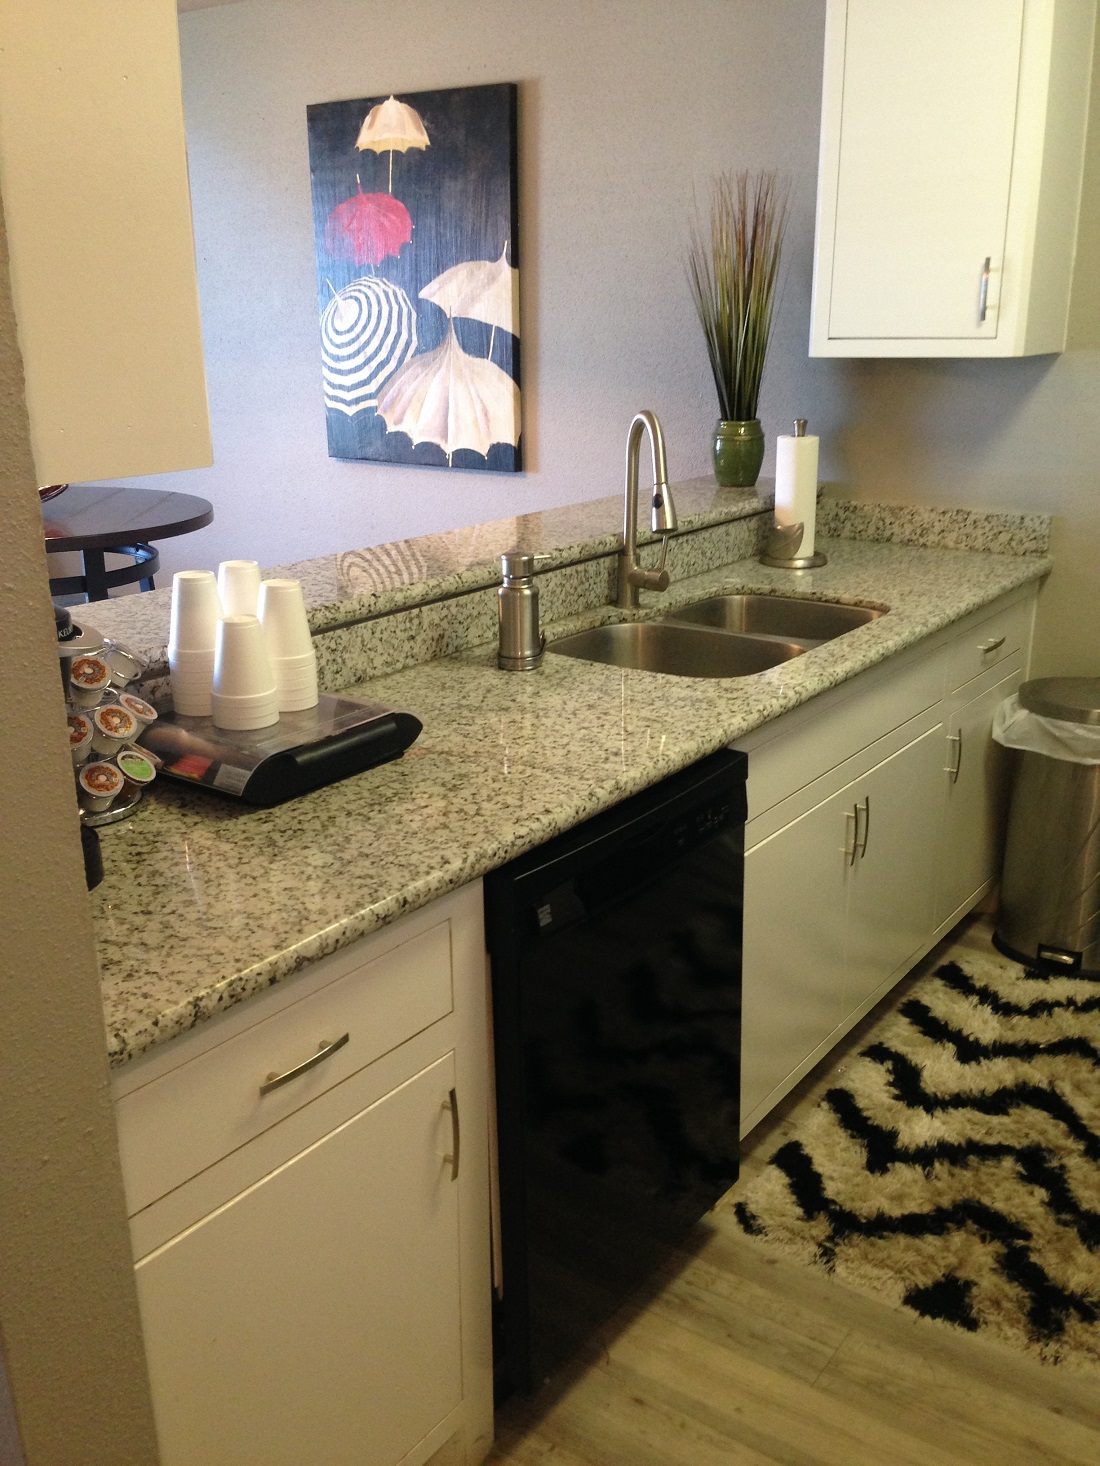 Spacious Kitchens at Grove on Gladstell Apartments in Conroe, Texas